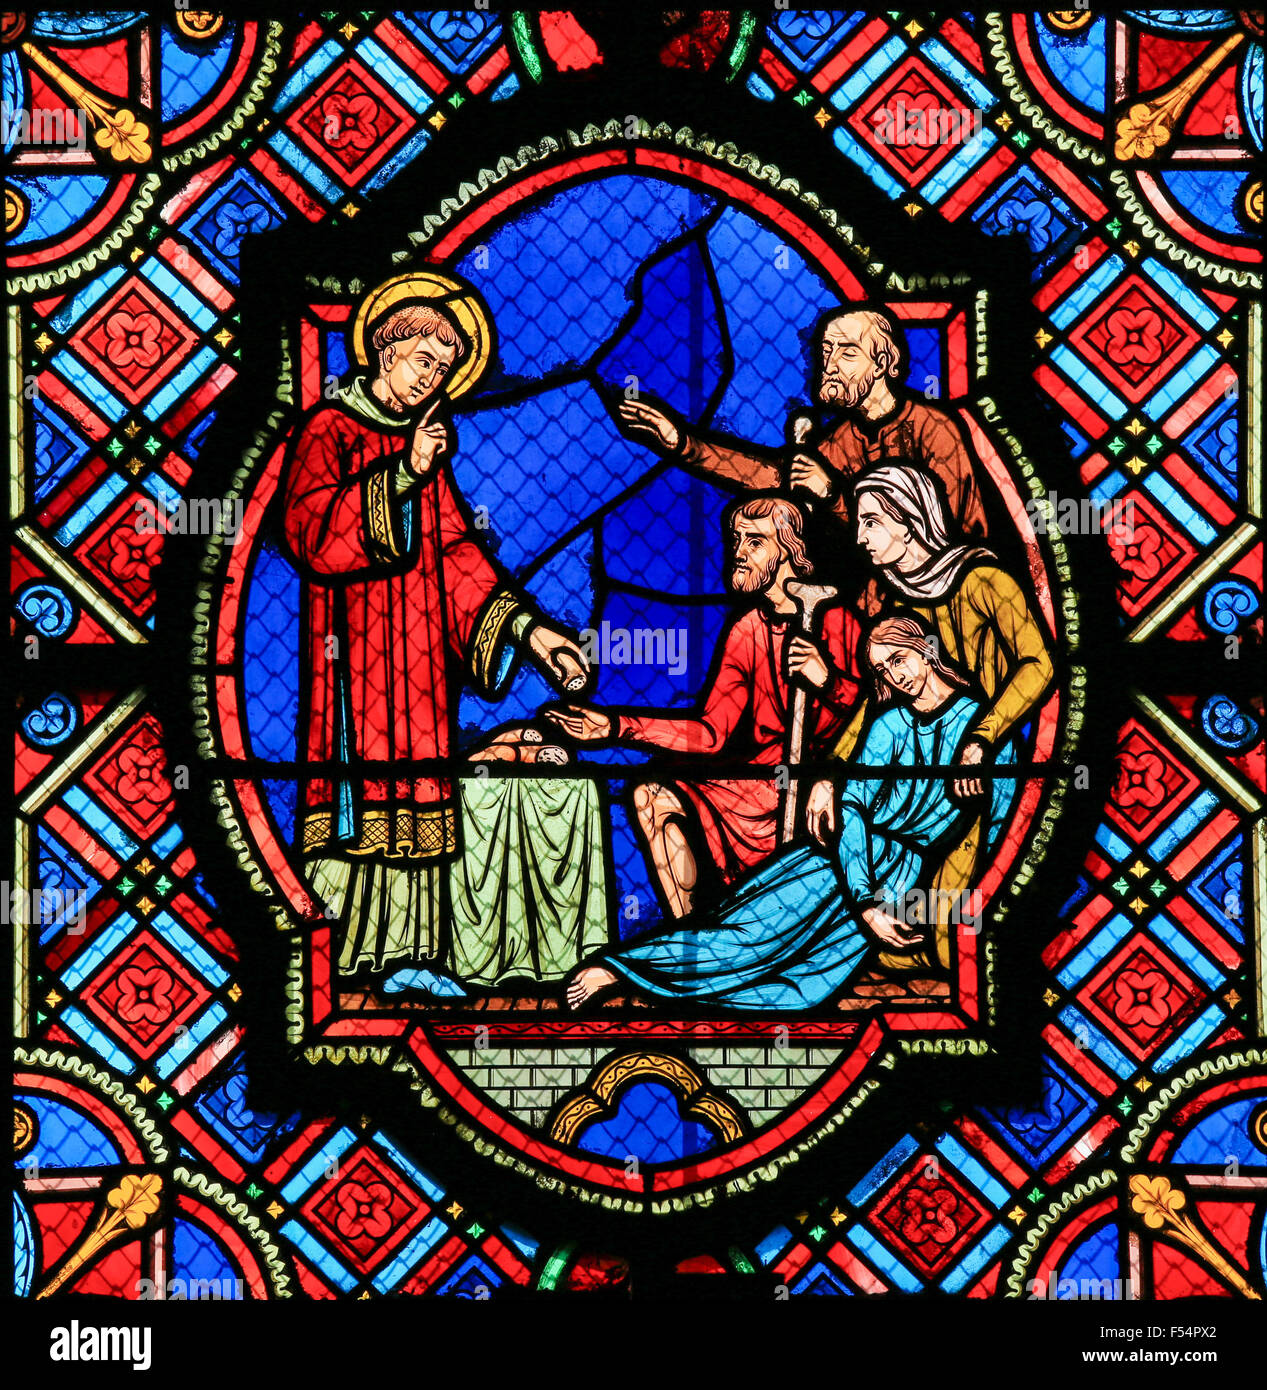 Stained glass window depicting a Saint handing out bread in the Cathedral of Tours, France. - Stock Image